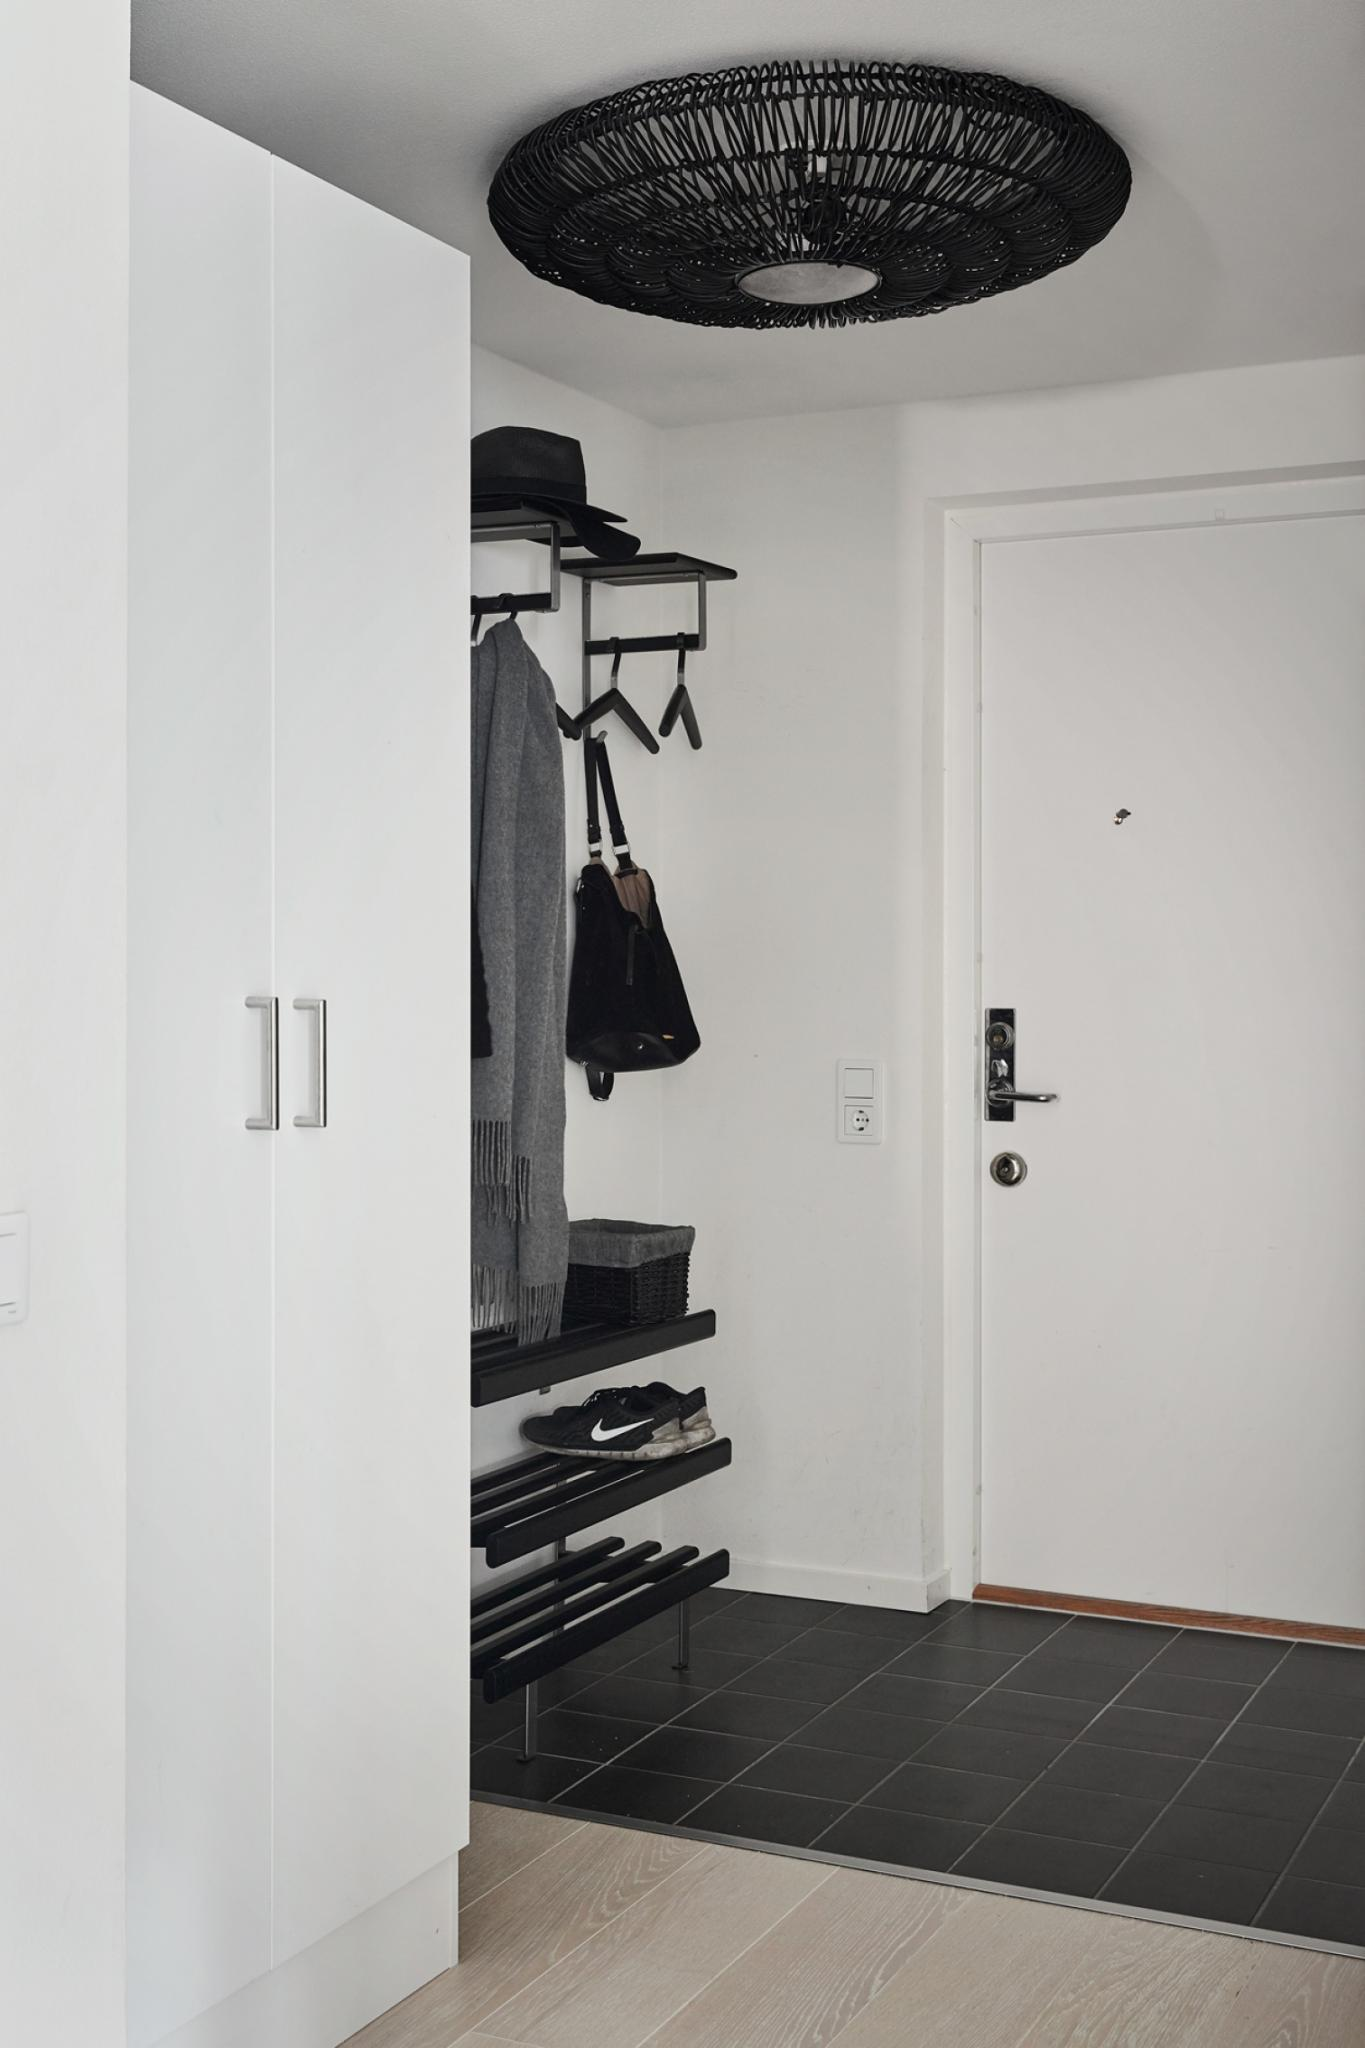 Open storage = Easy access! - Make the most of your entry and live in the space with ease. As long as its kept neat, this idea is a winner. When you enter and exit your space its a visual reminder of what you need. Did someone say